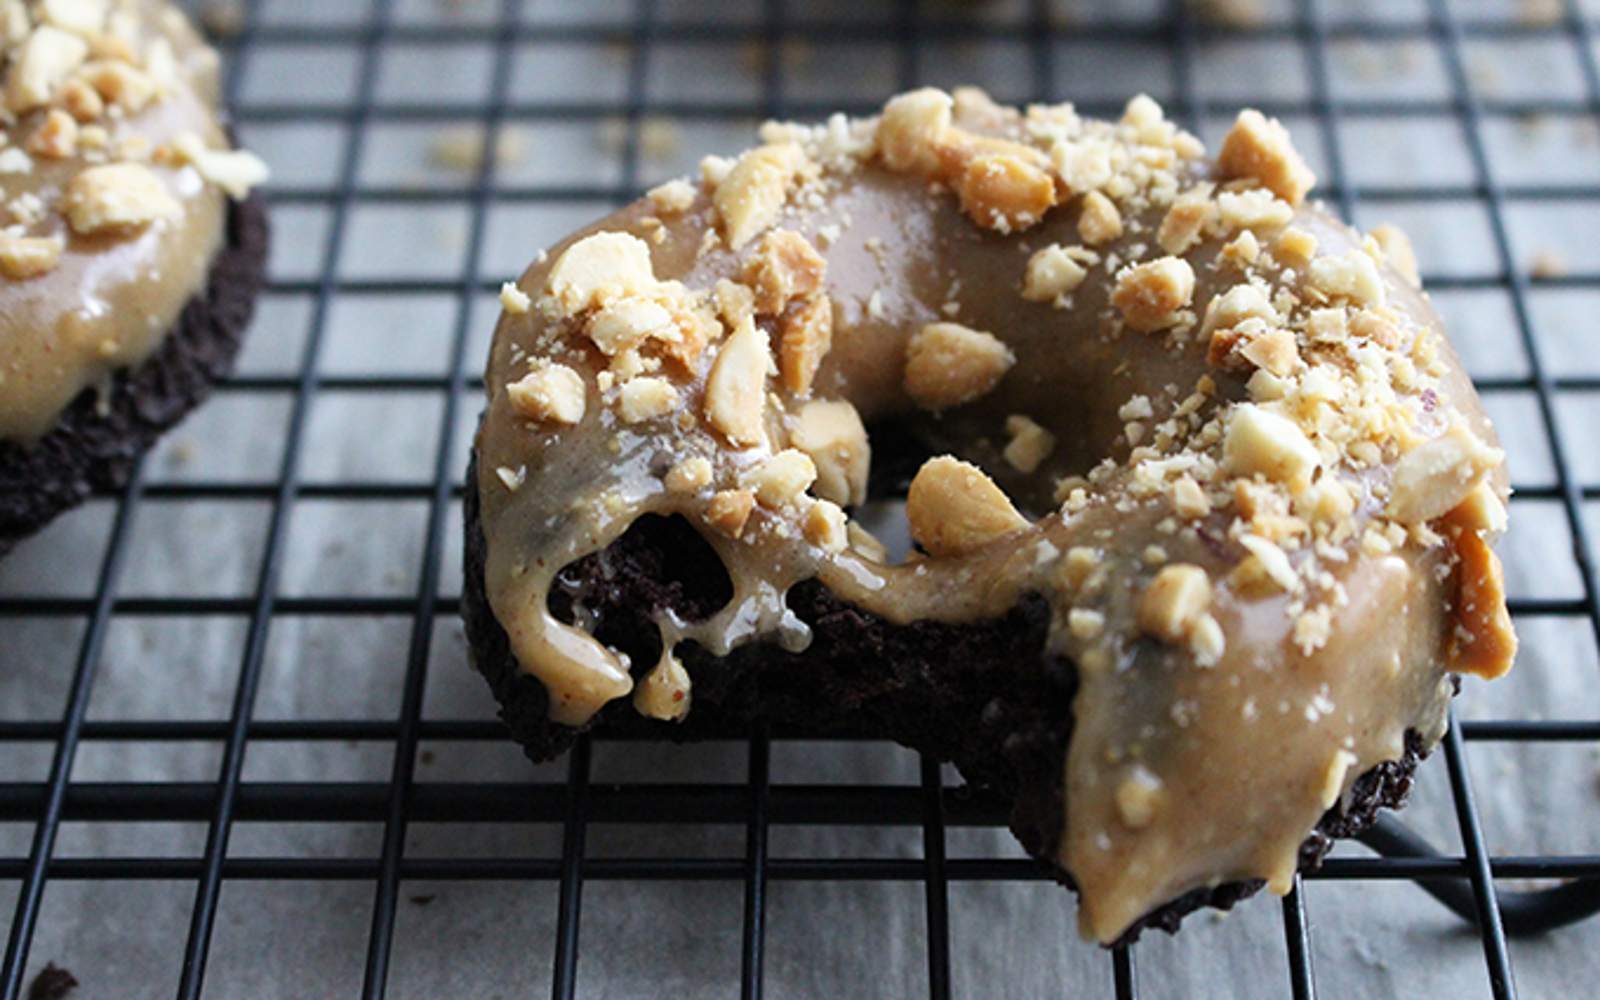 Vegan Chocolate Doughnuts With Peanut Butter Glaze with nuts